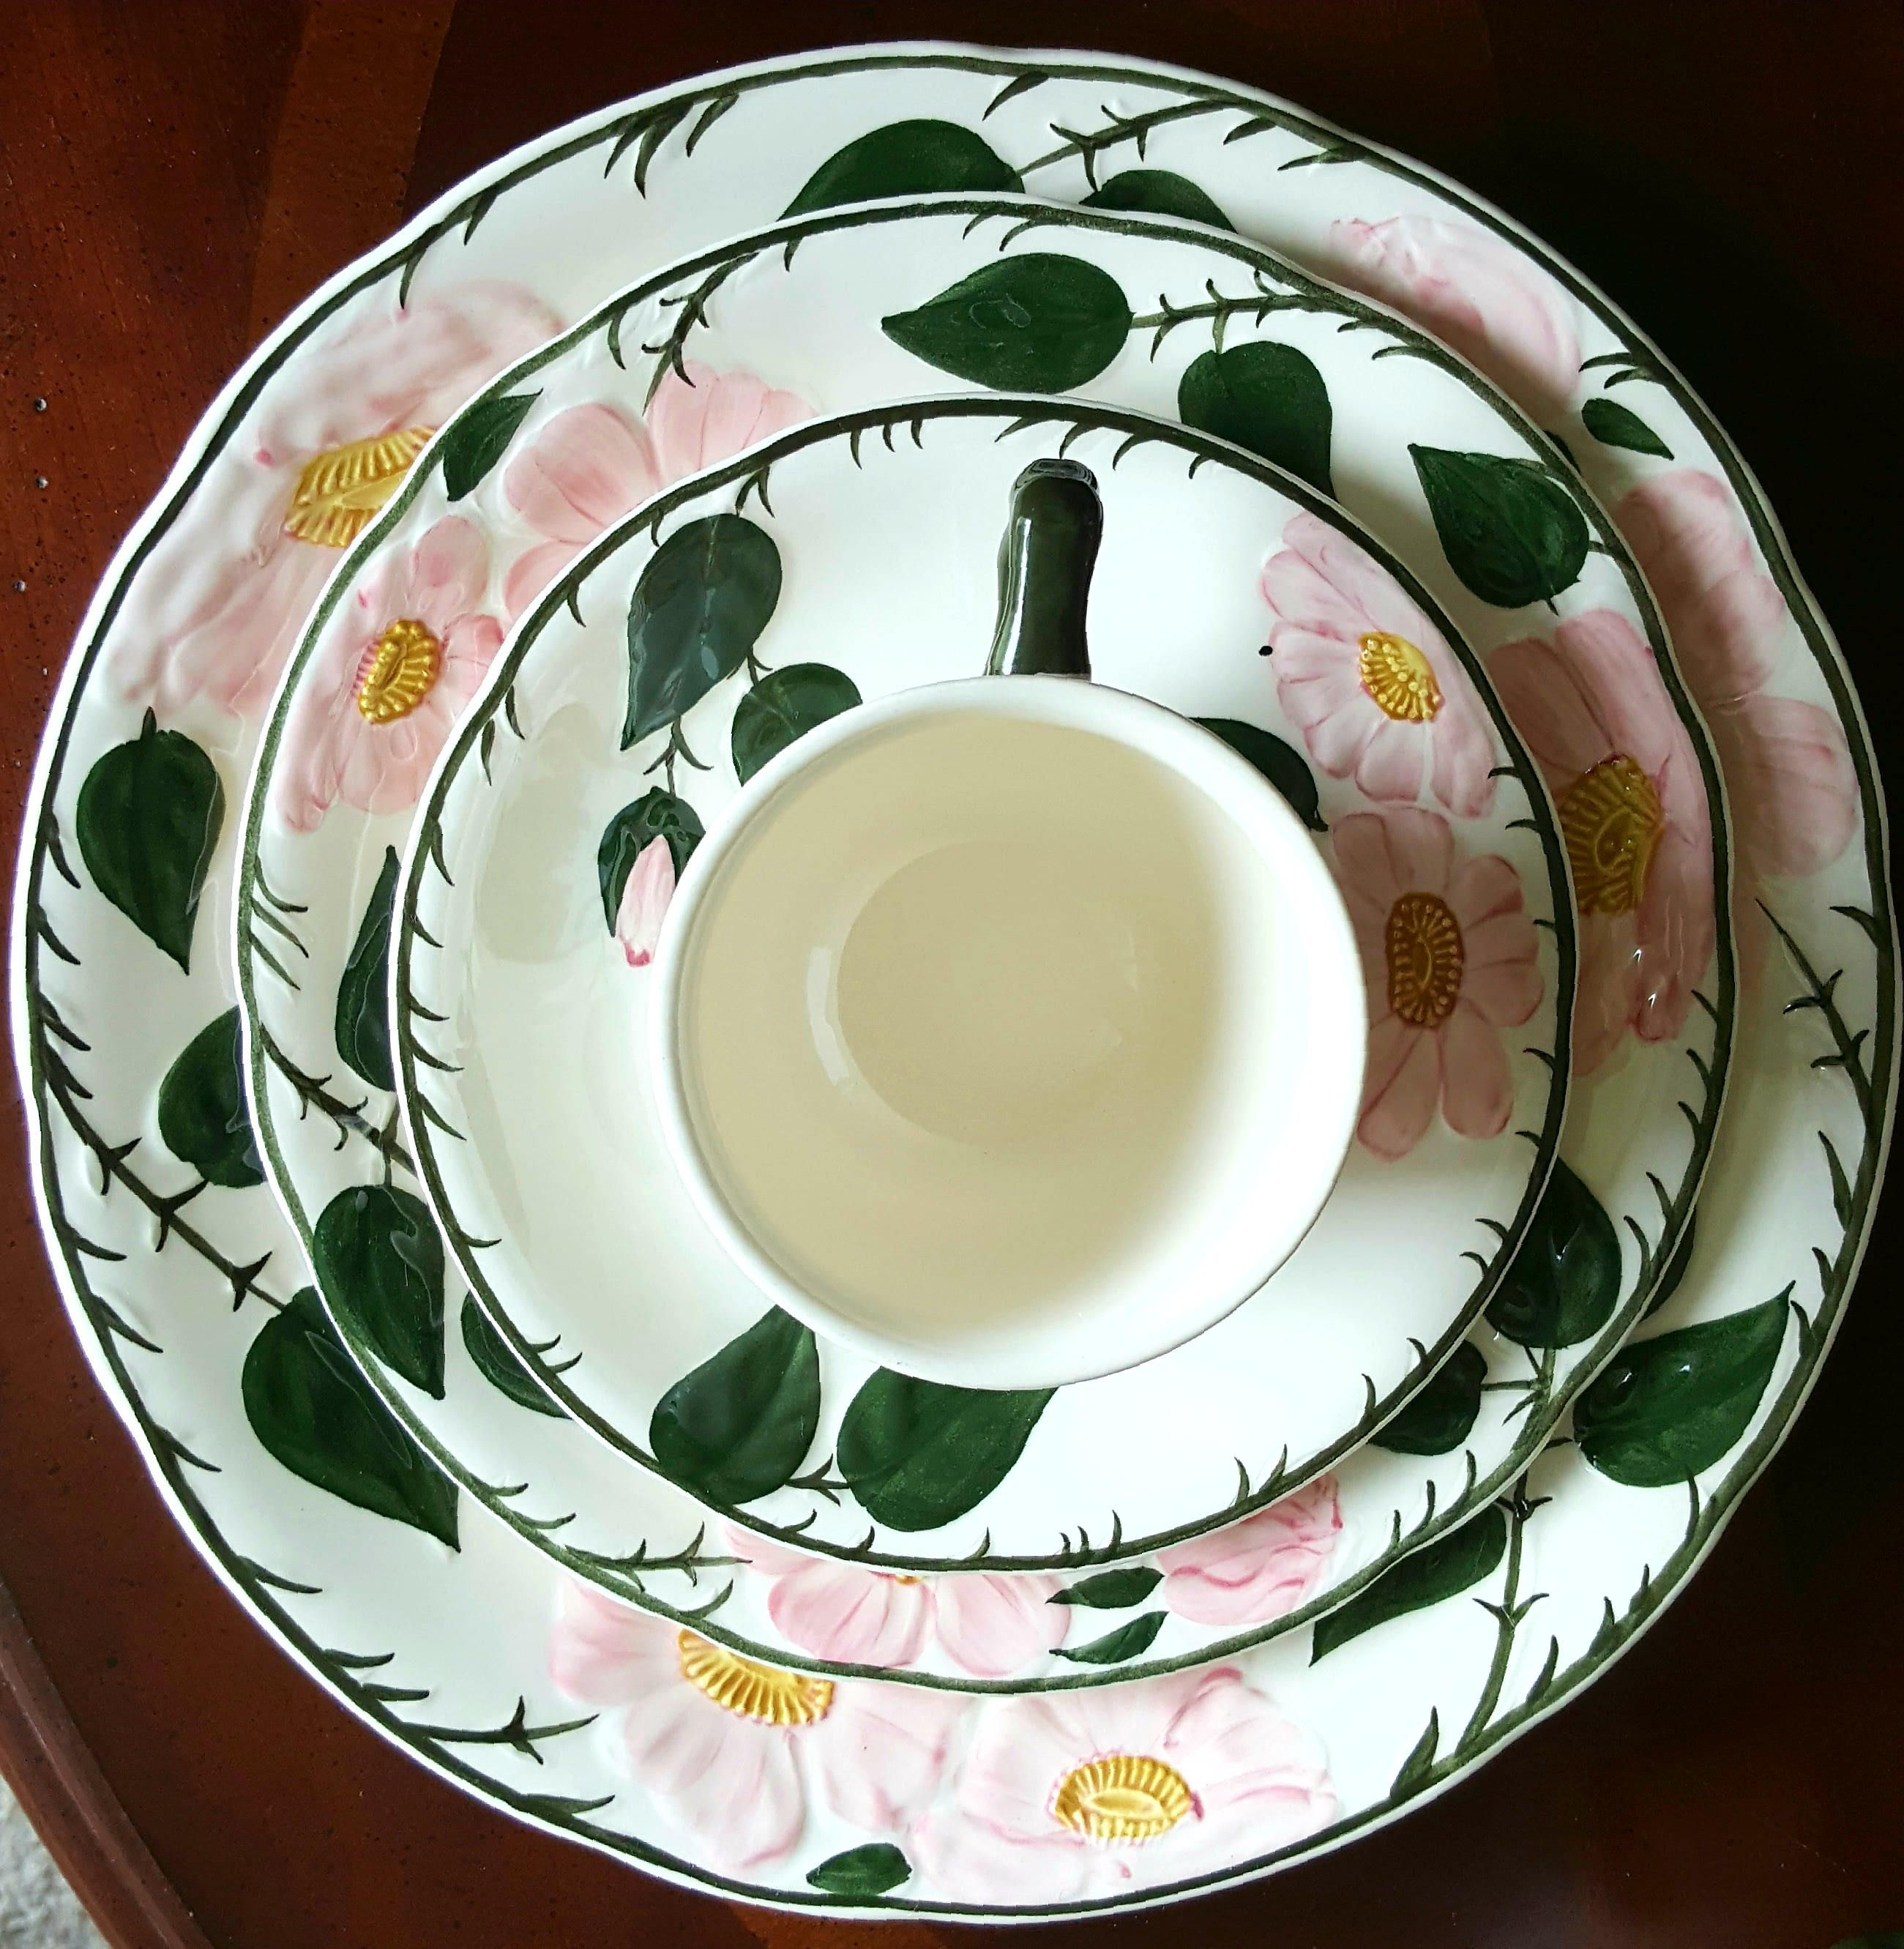 Villeroy Boch China Set 6 Piece Place Setting Wild Rose Collection Tea China Wedding China Replacement China Tableware China Villeroy Boch